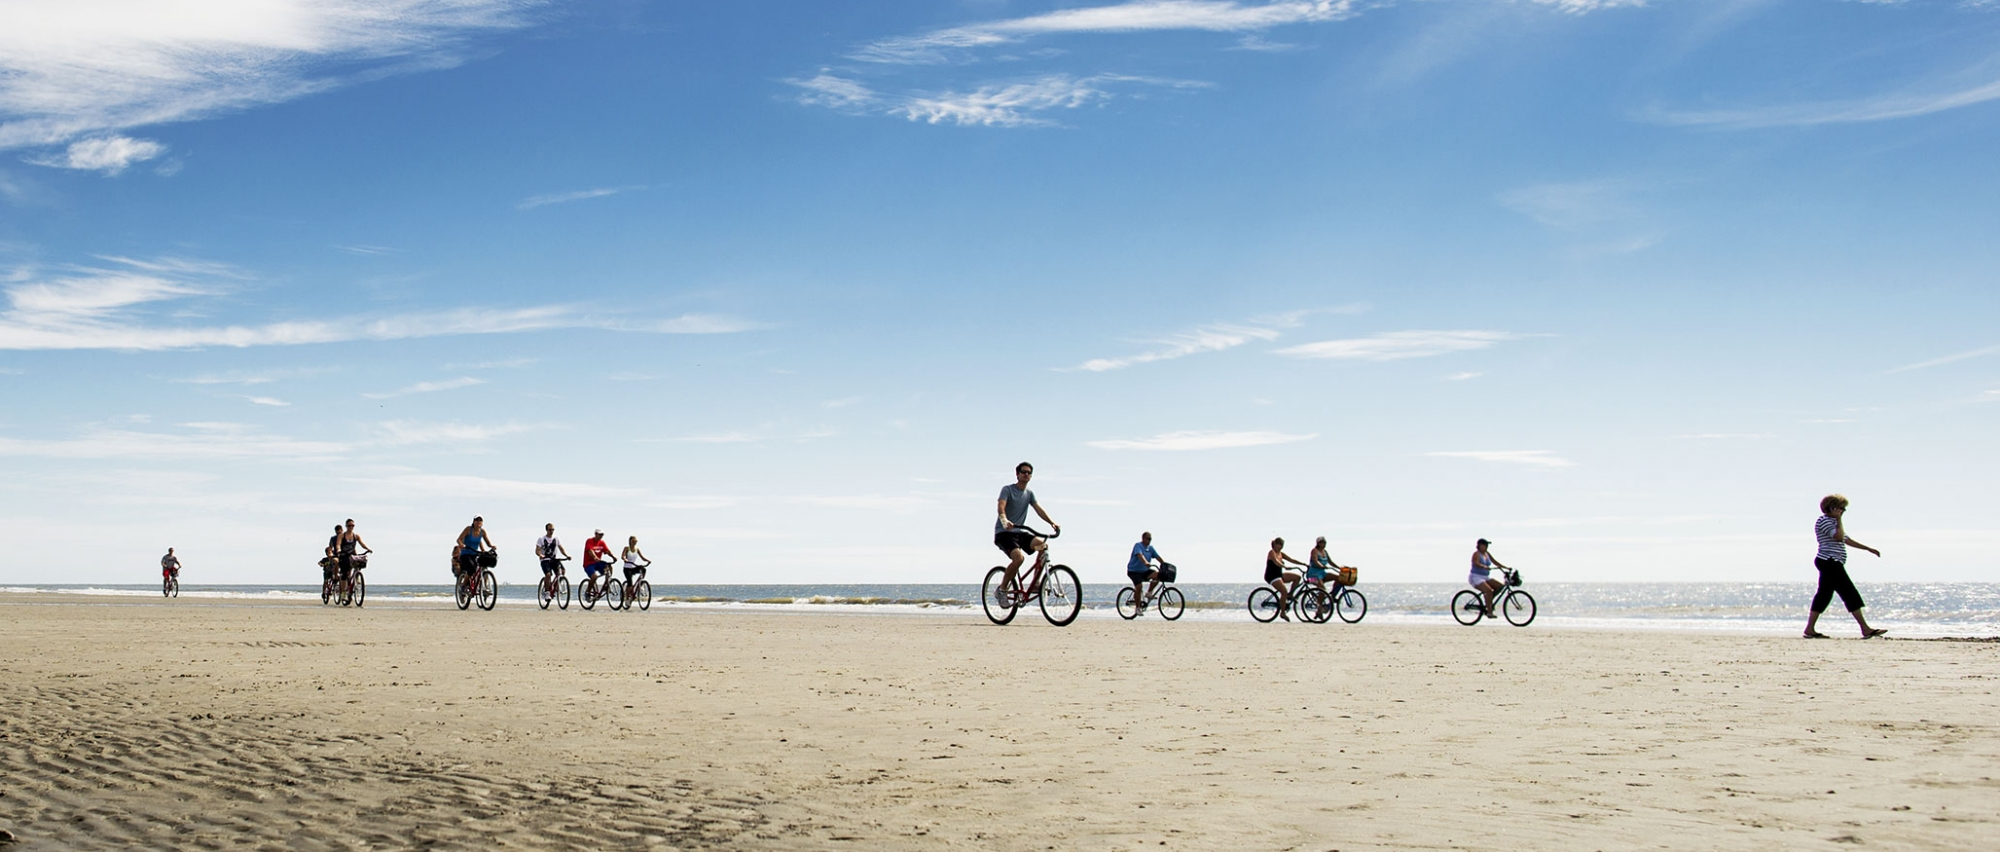 Groups of cyclists on the beach